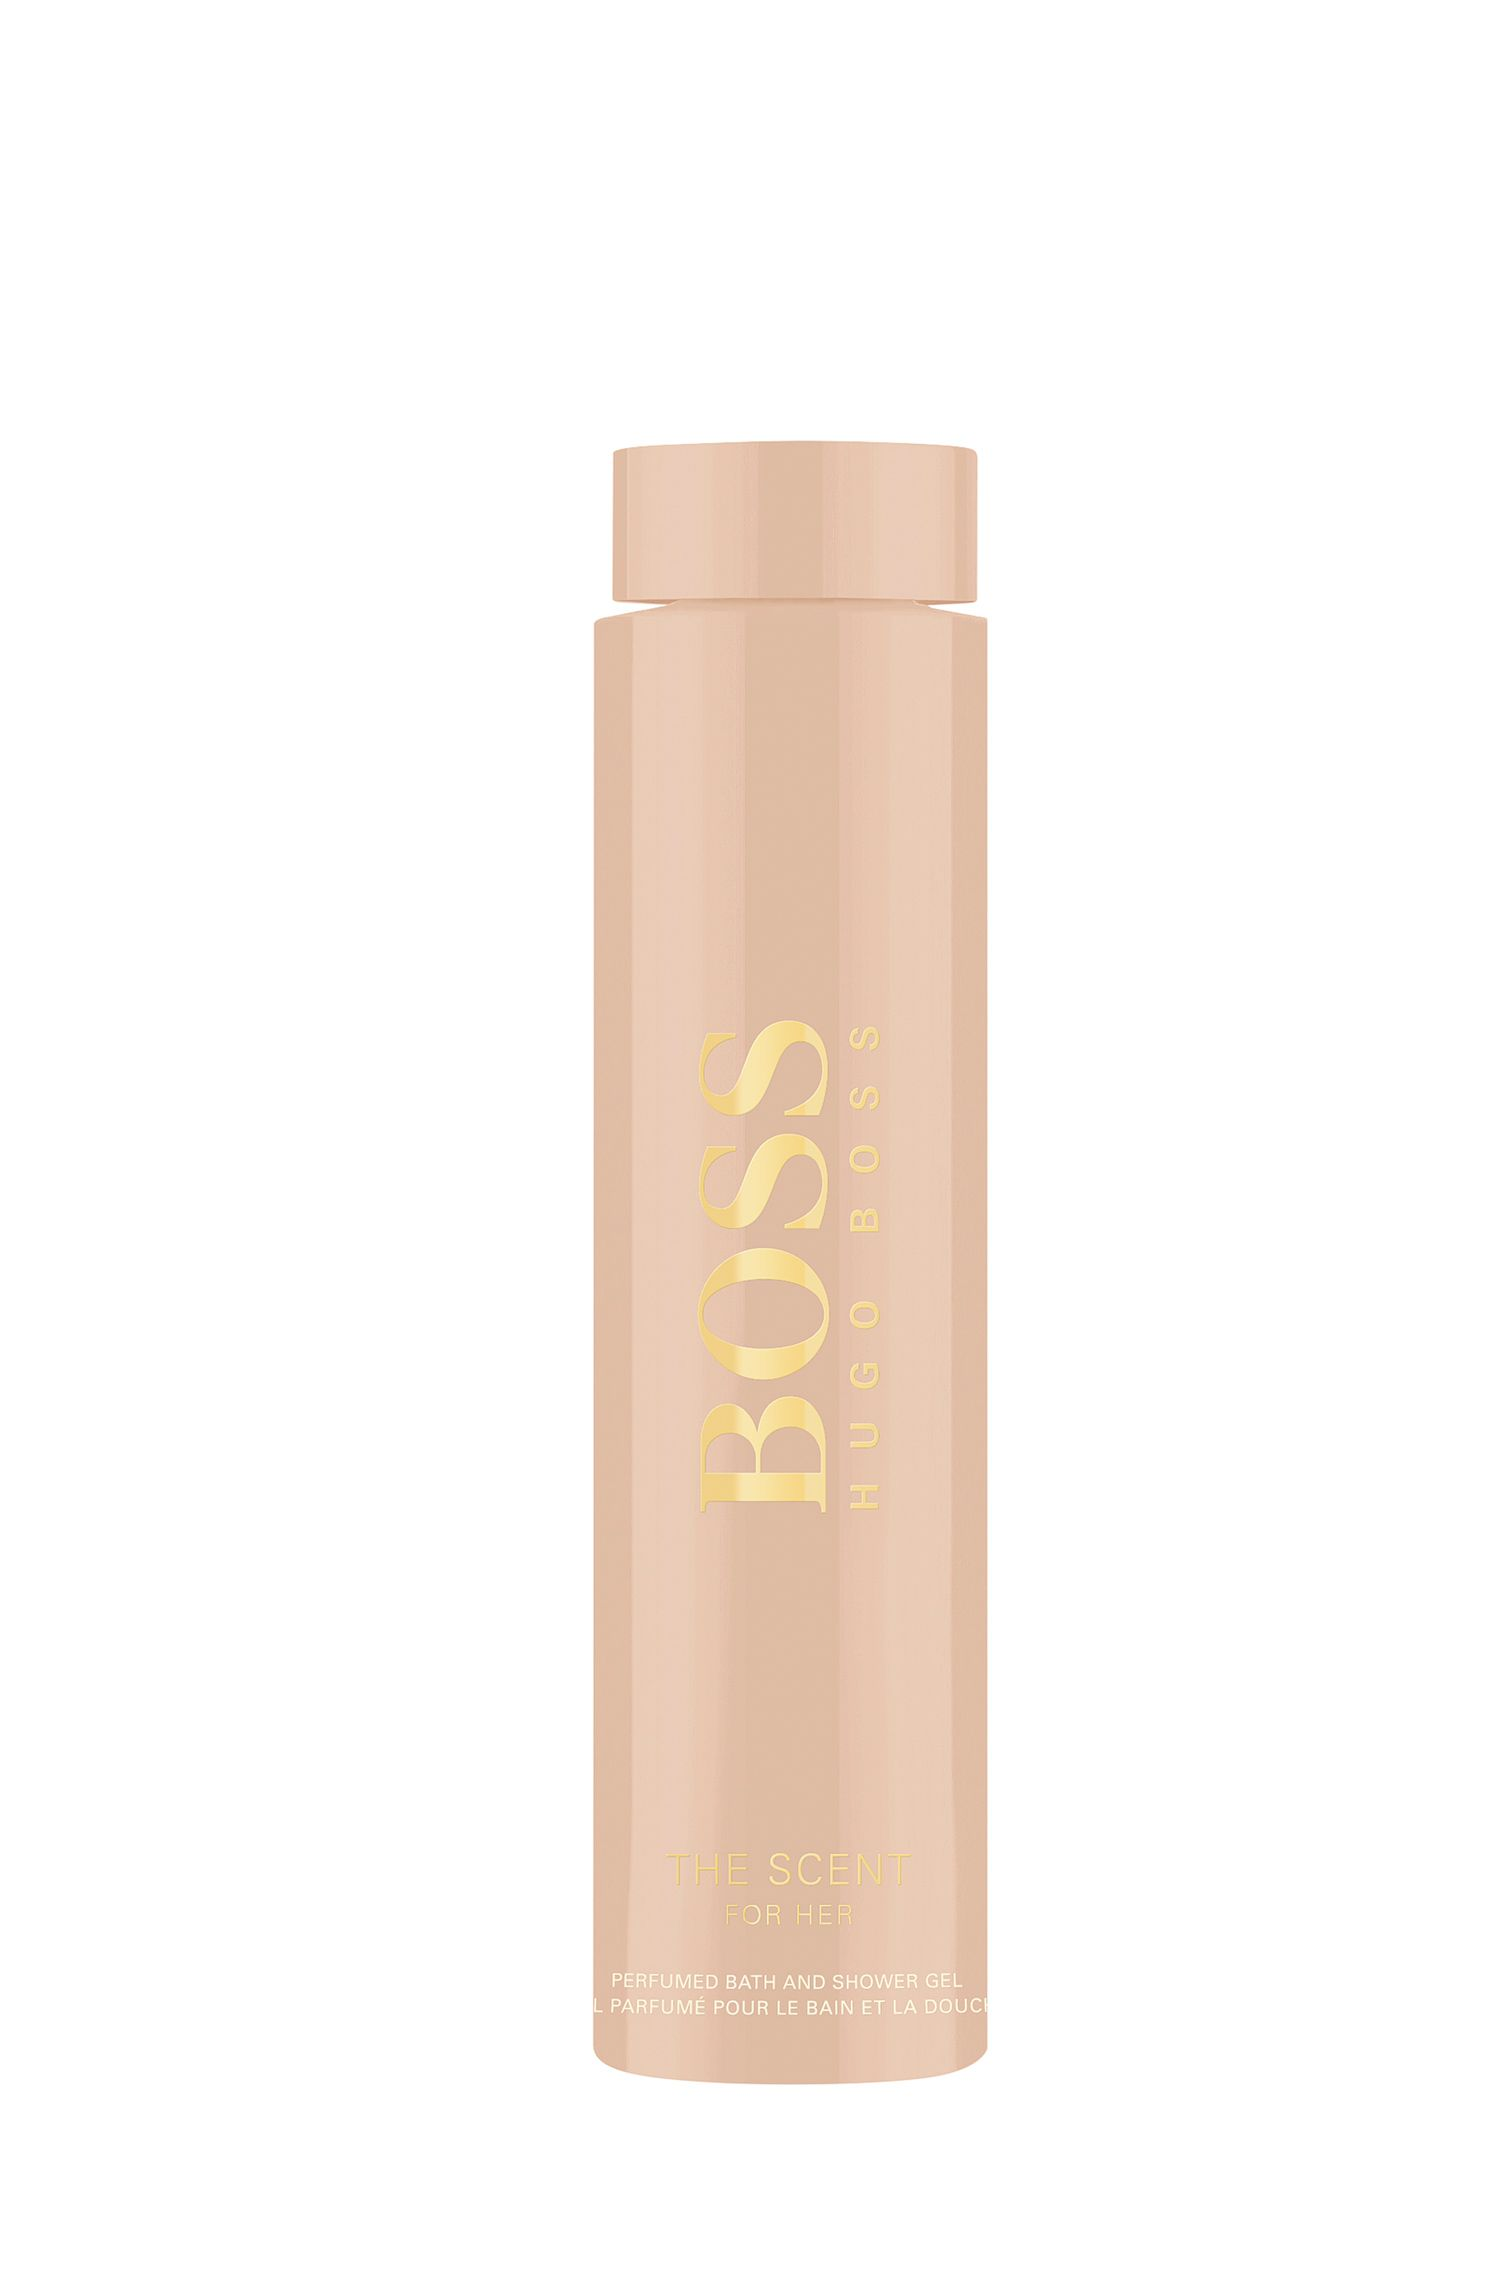 Gel Douche BOSS The Scent for Her, 200 ml